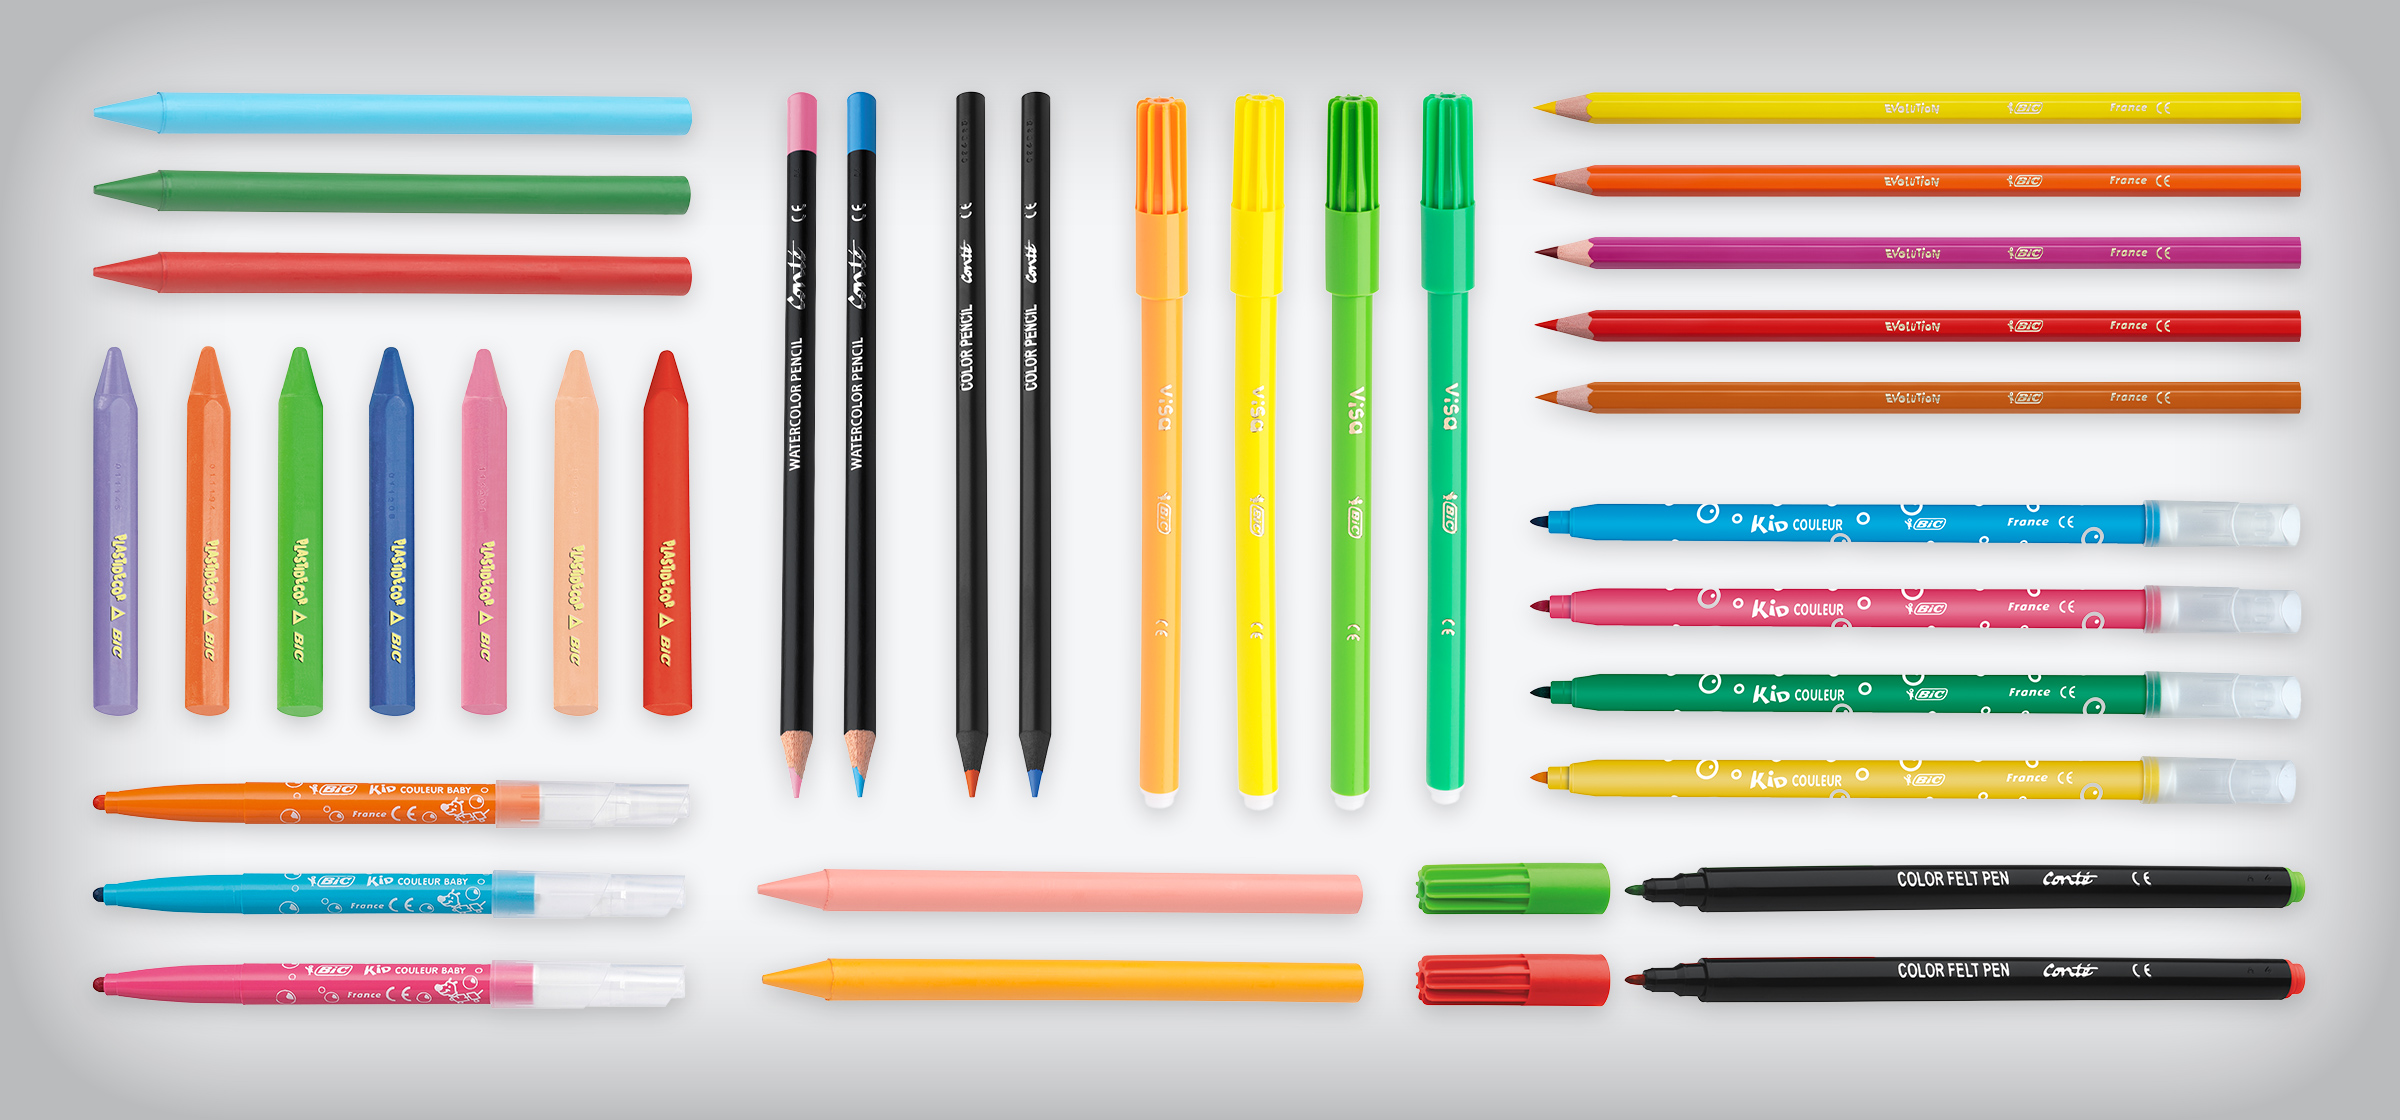 Bic-Welcome5